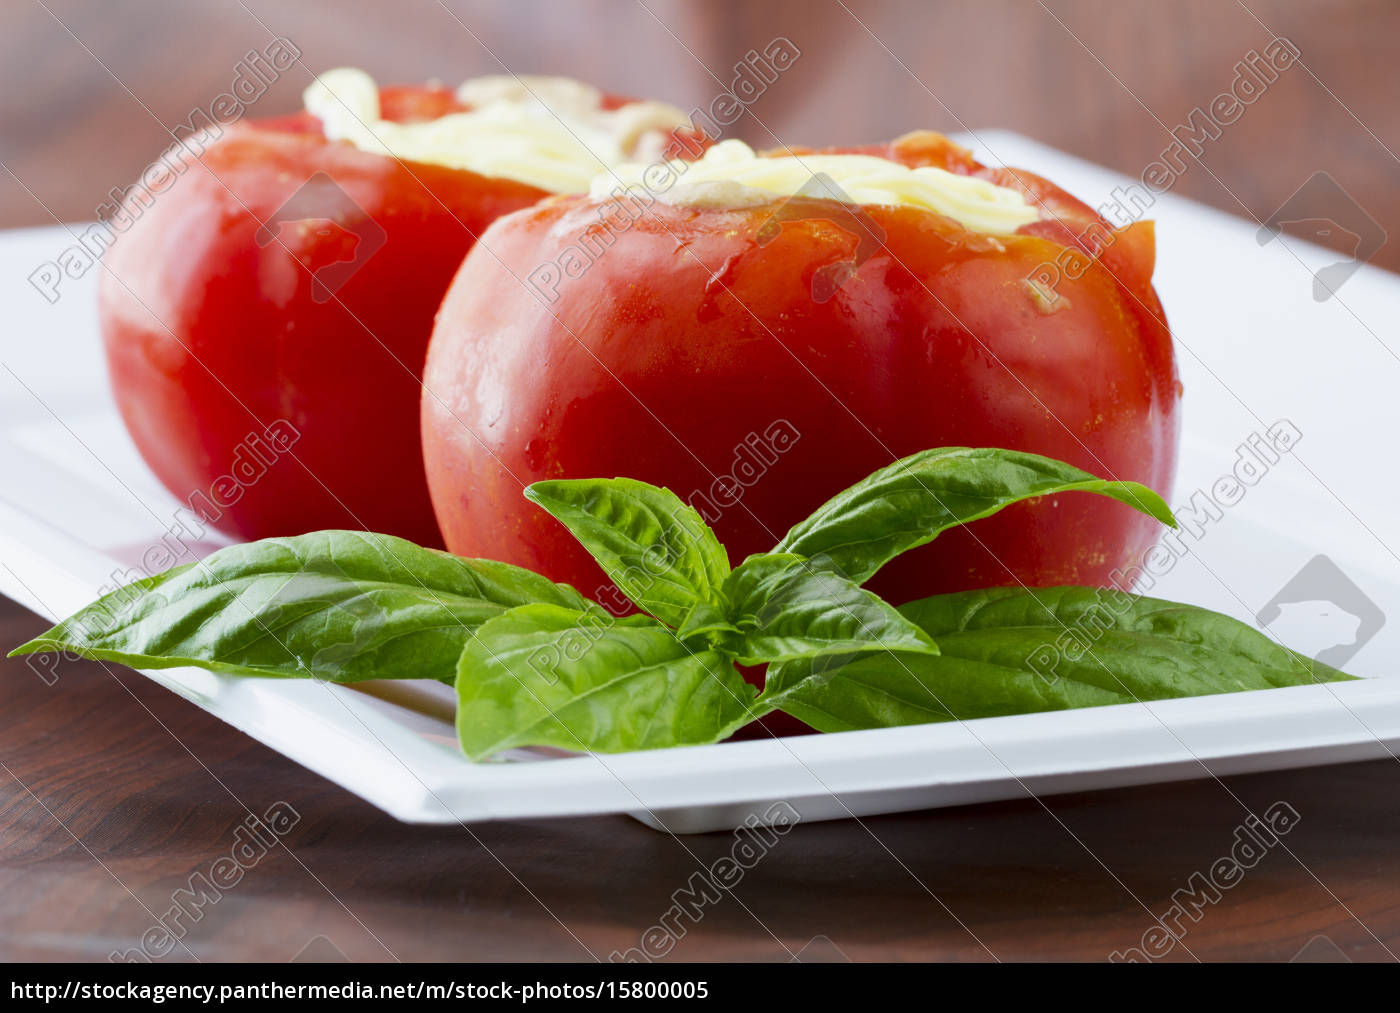 stuffed, tomatos, over, plate - 15800005